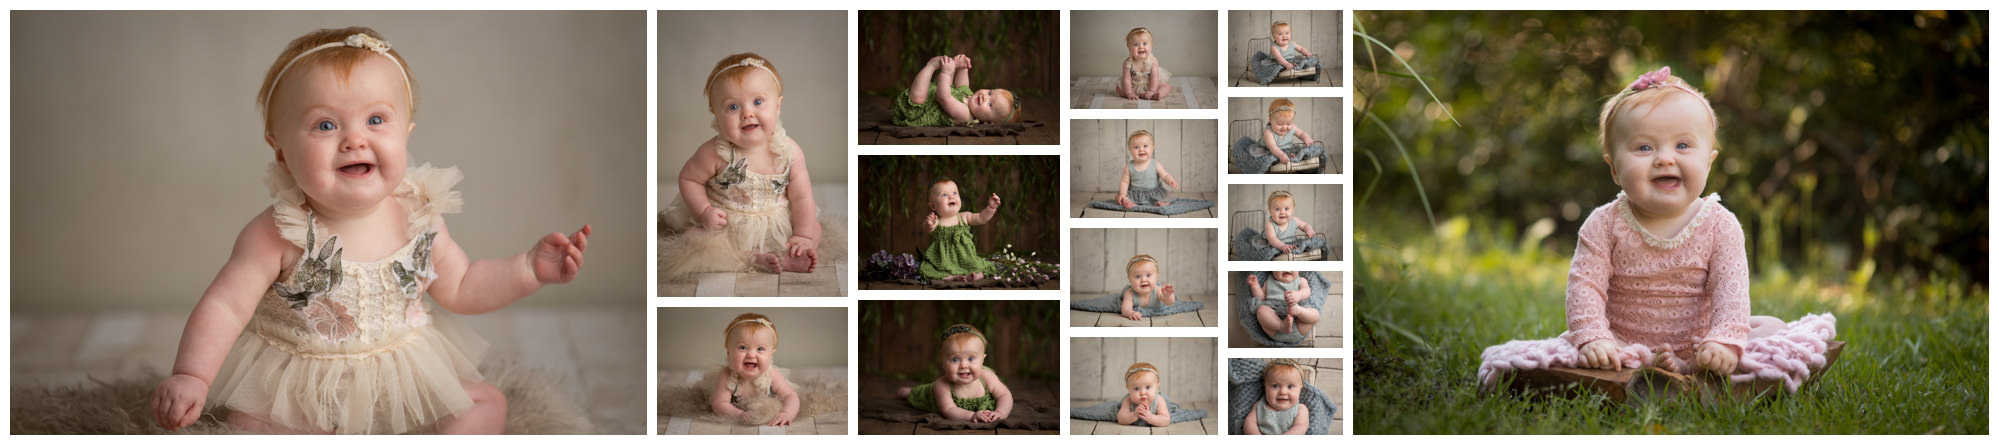 8 month old baby portraits